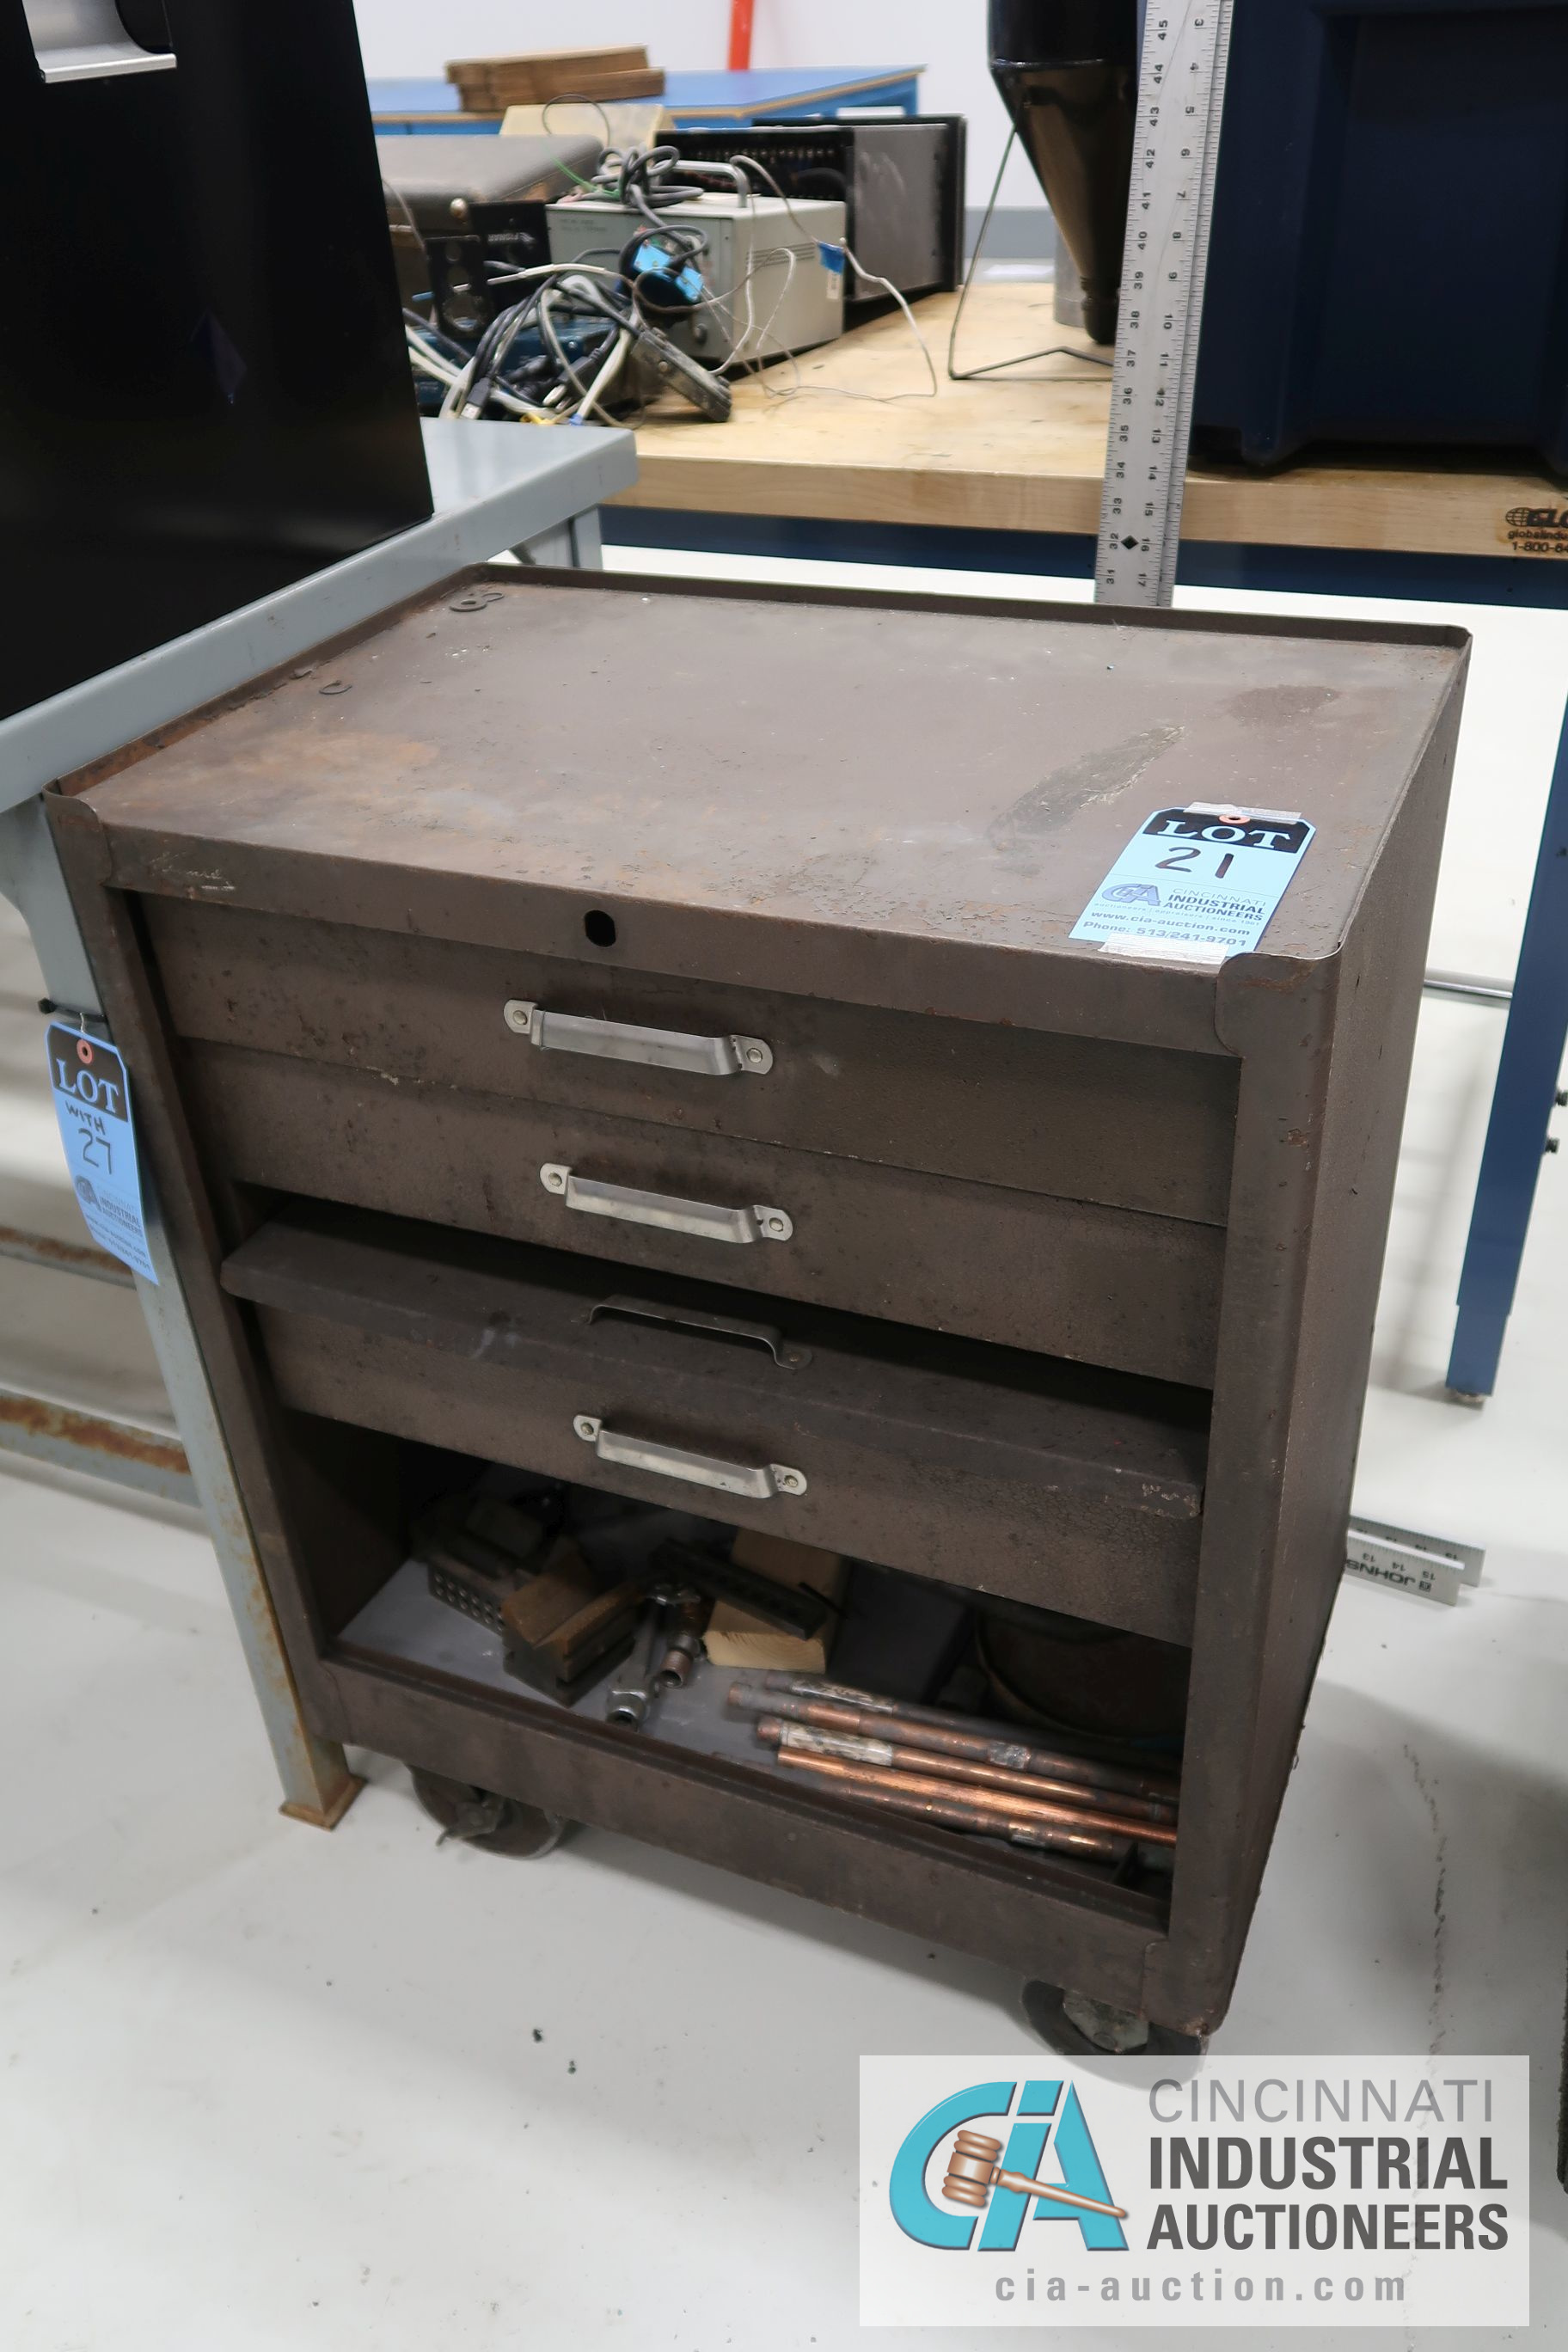 4-DRAWER KENNEDY PORTABLE TOOL CHEST WITH MISCELLANOUS